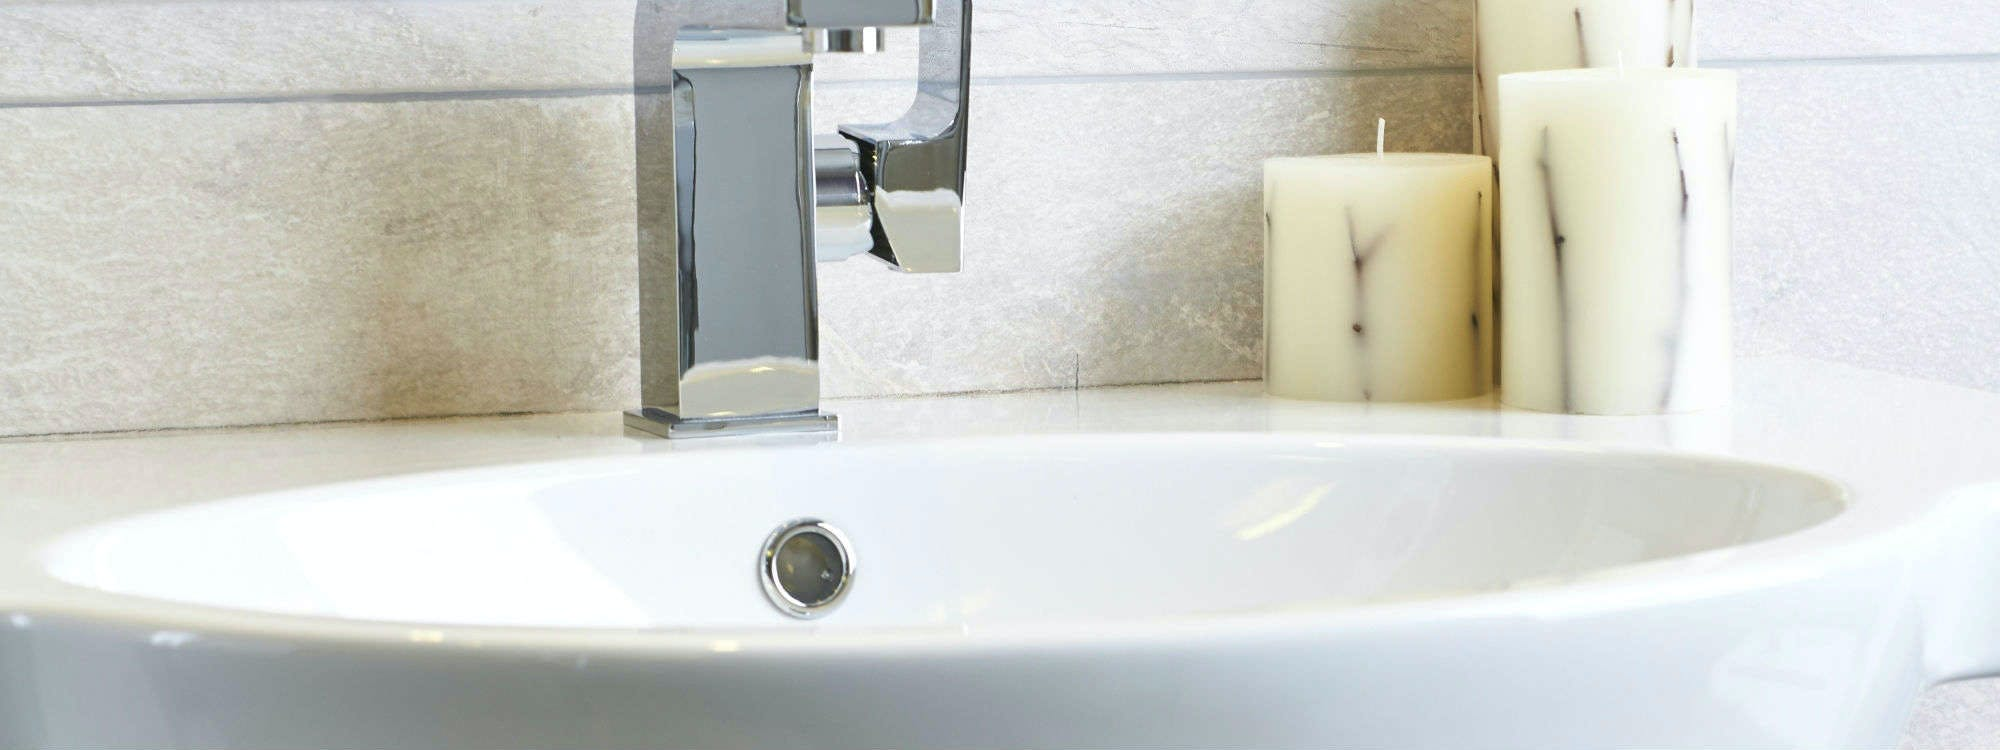 At More Bathrooms, Leeds & Harrogate, we design, supply & install dream en-suite bathrooms.